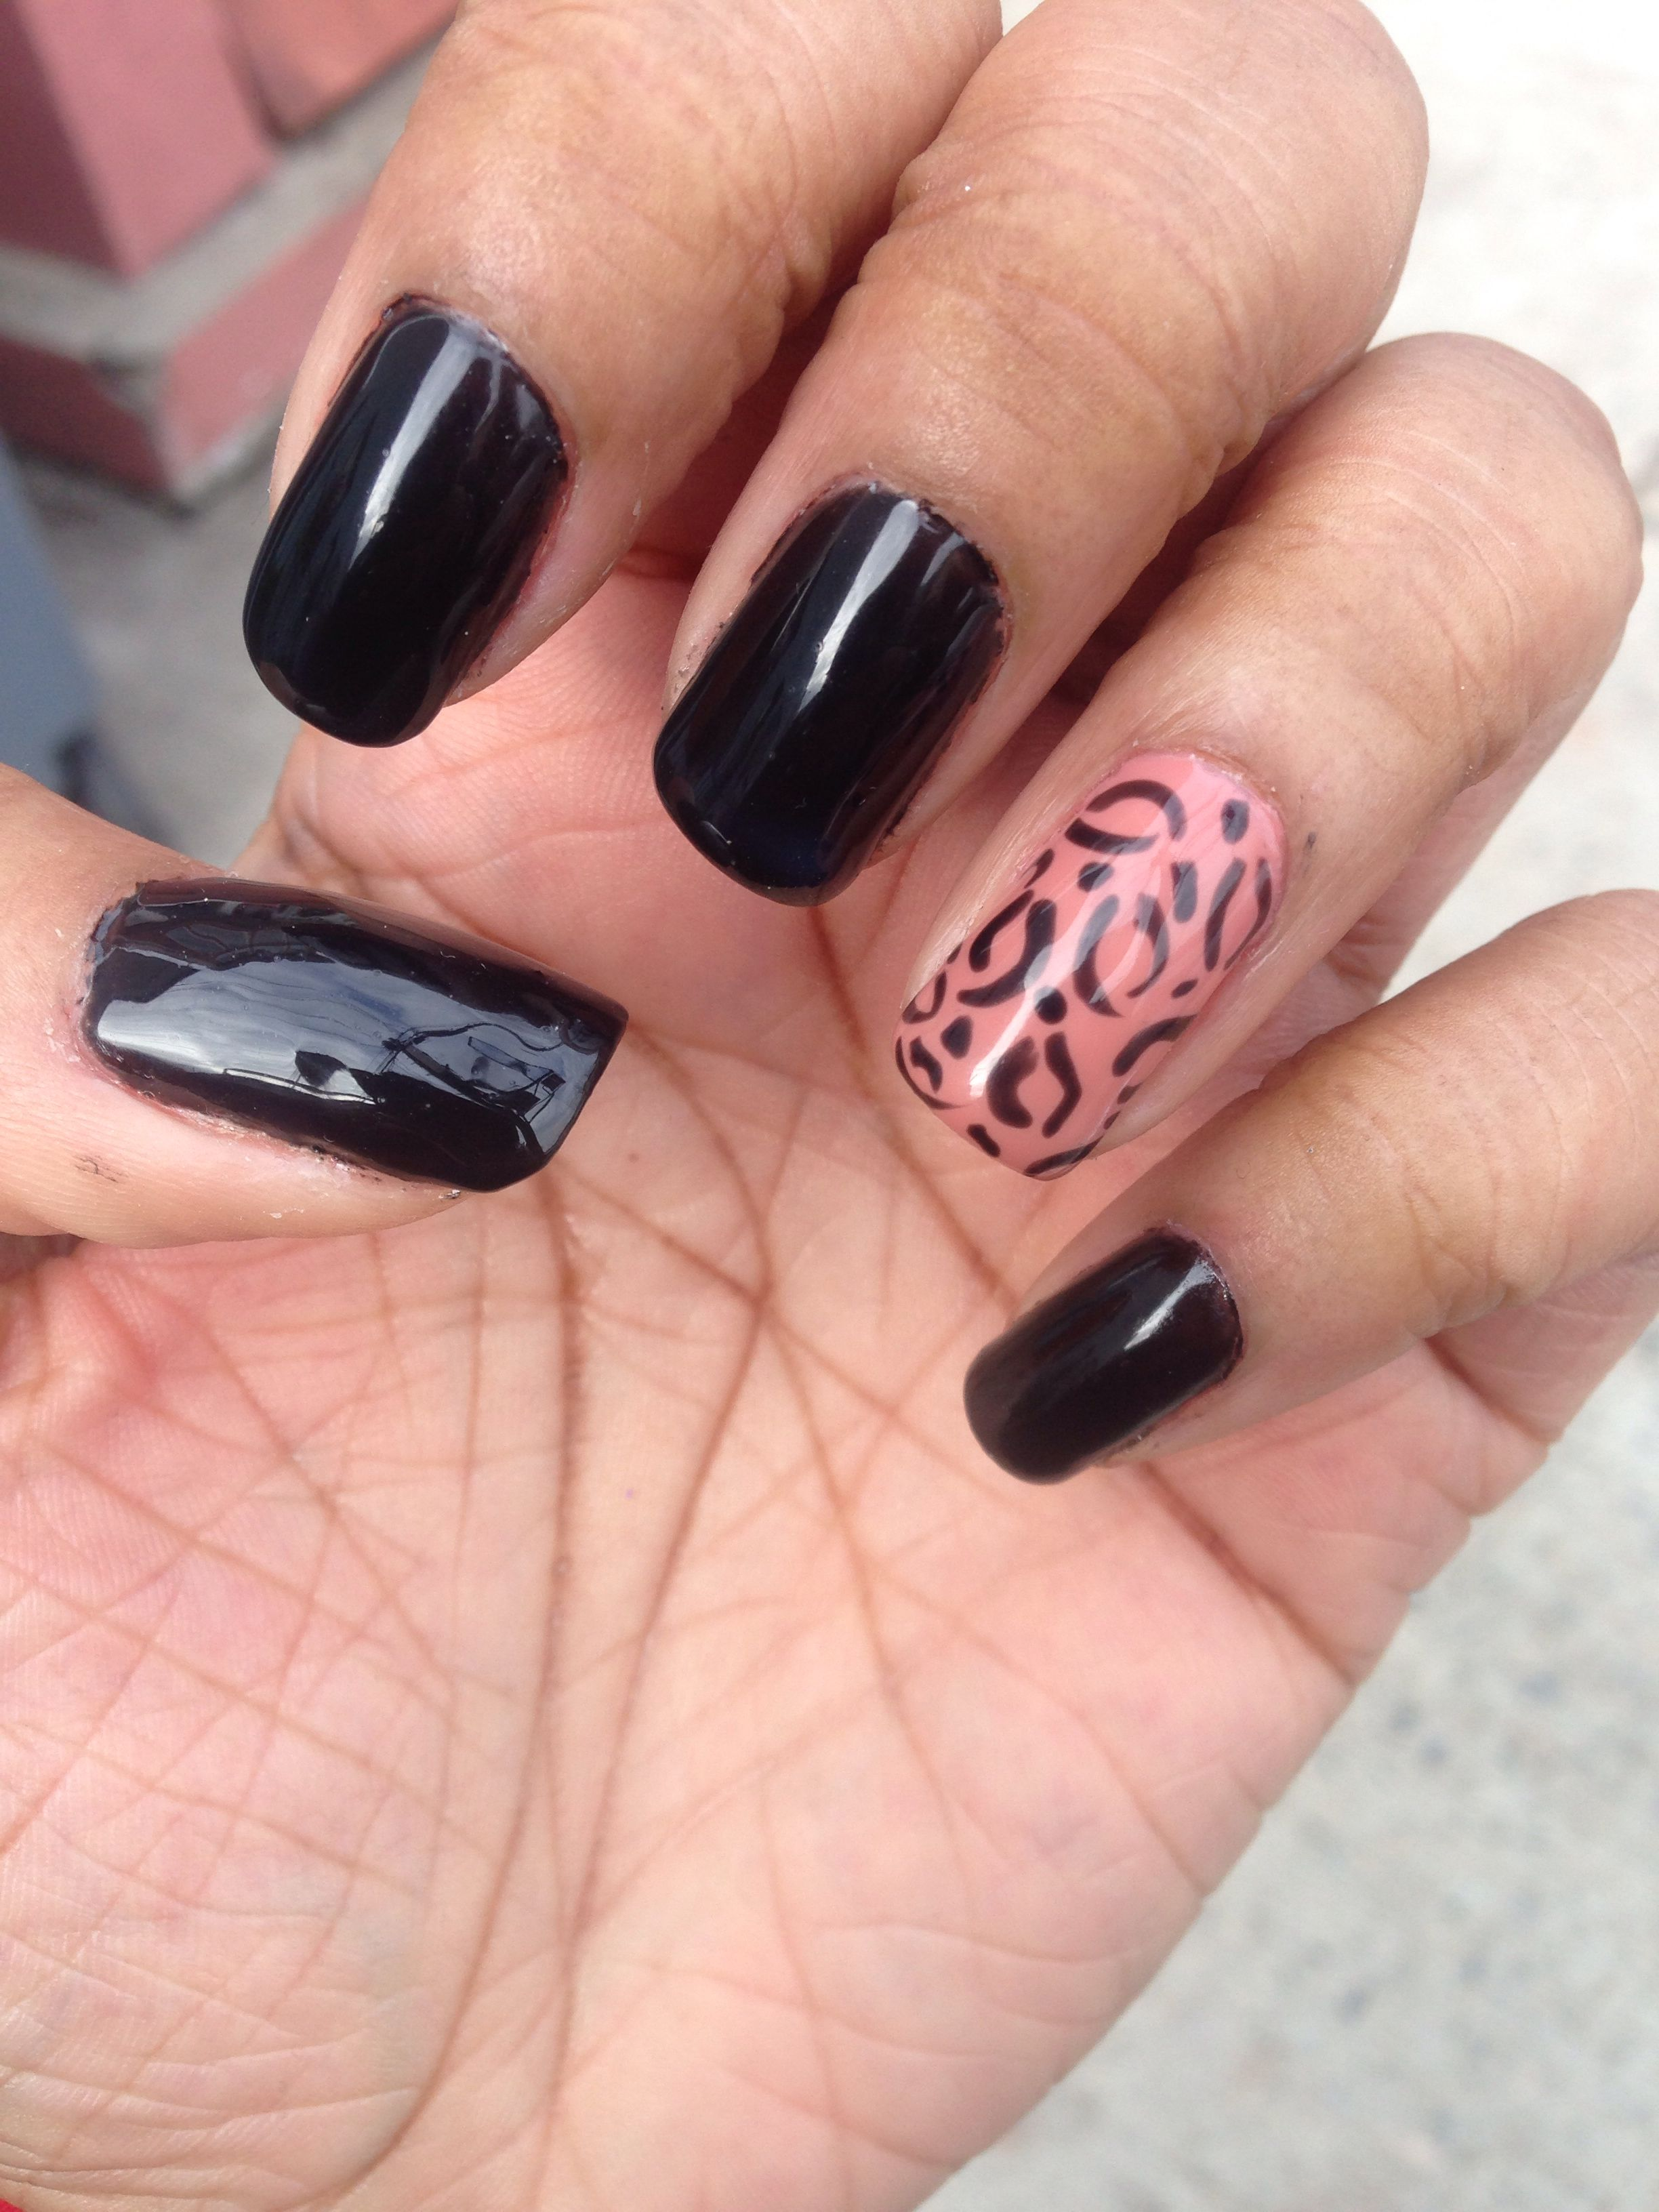 Got my nails done today love this design how to do